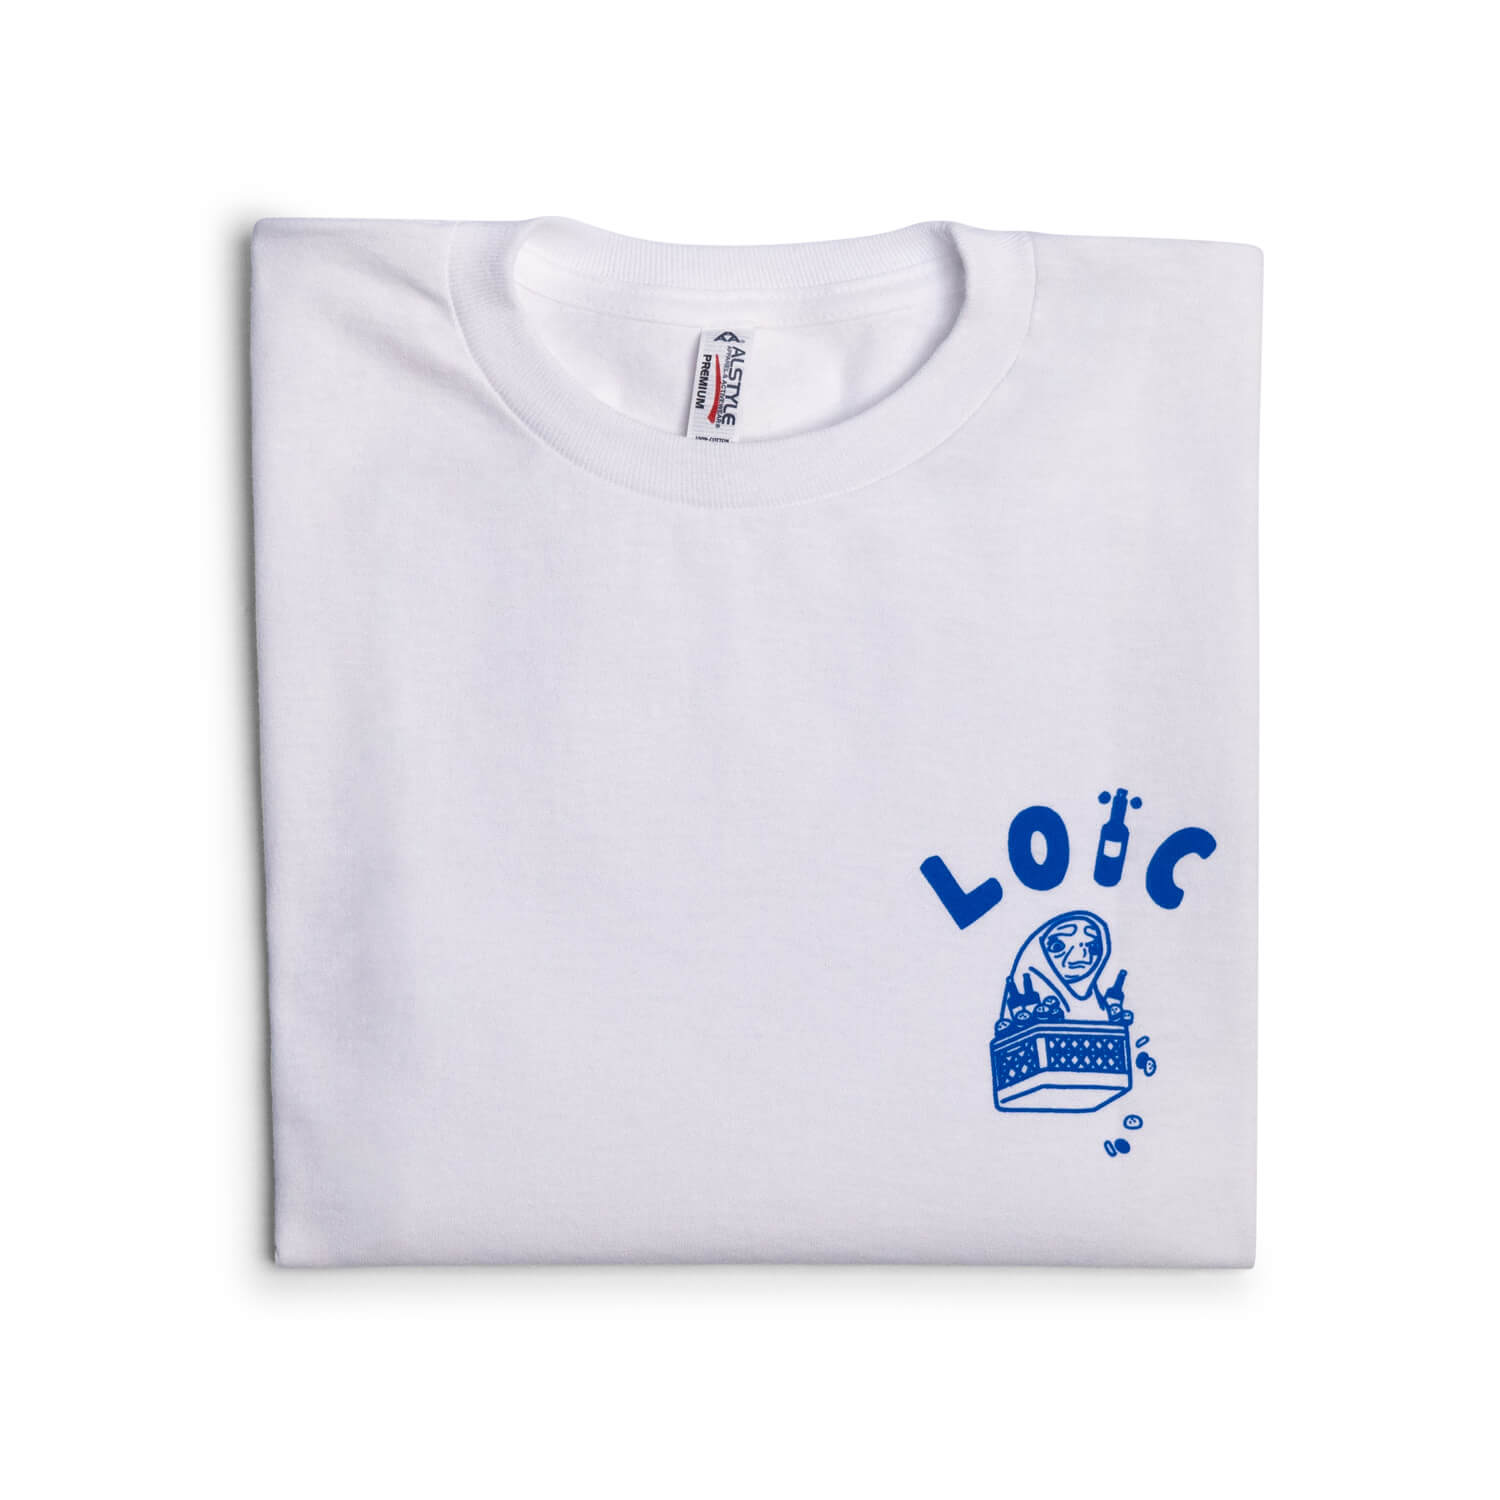 "Loïc ""Take Us Home"" T-Shirt (White/Blue)"